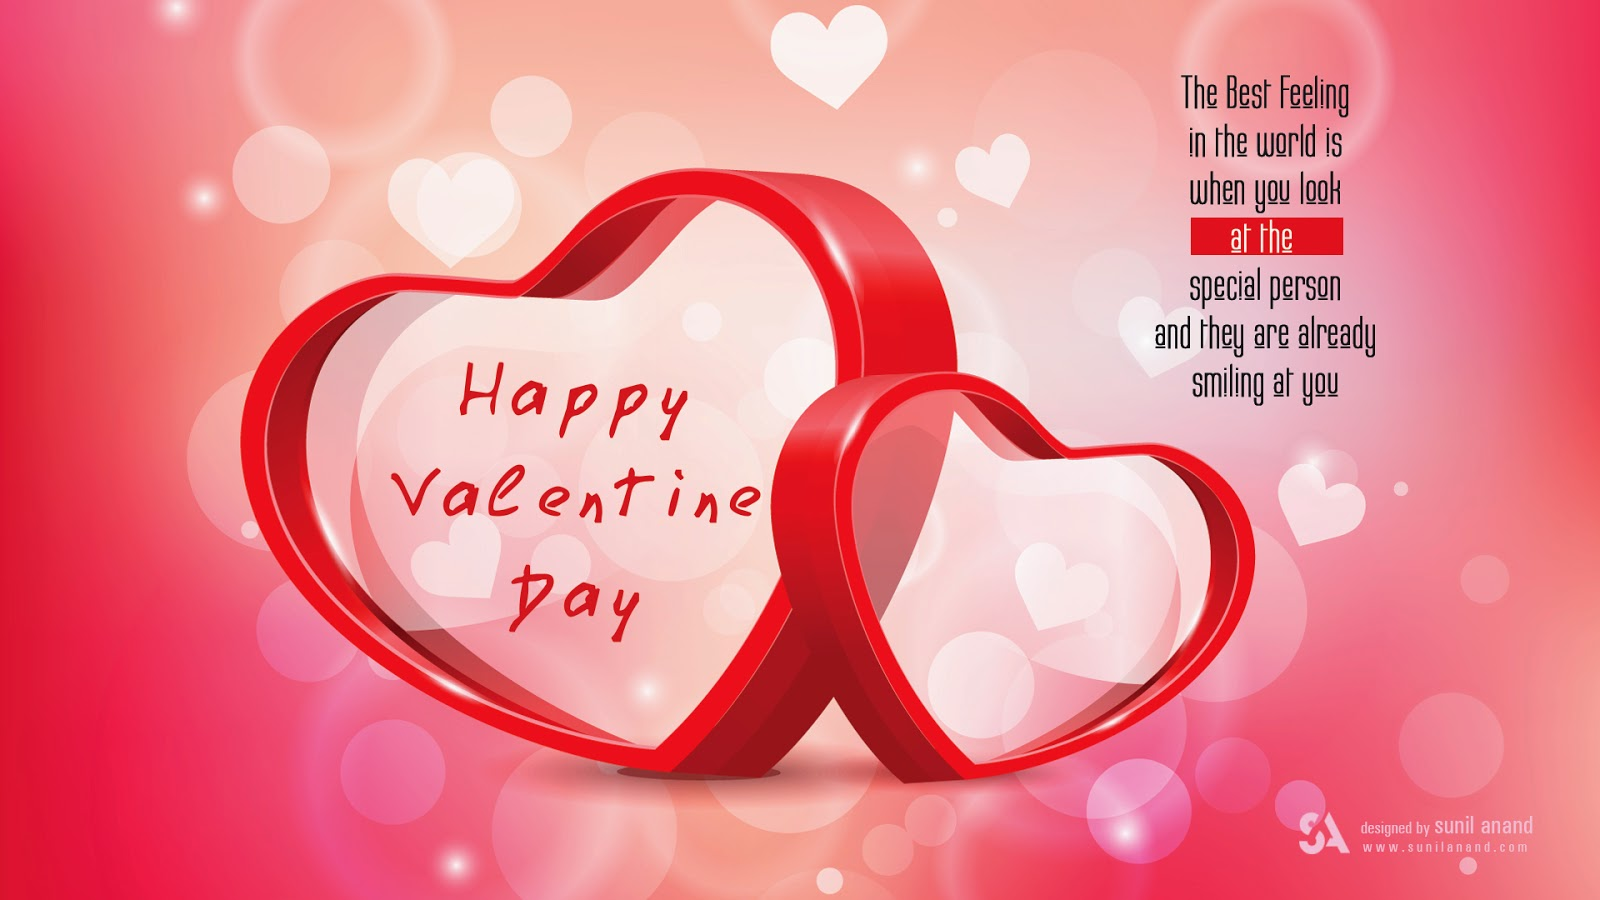 Download Wallpaper Name Sunil - Valentine%2BDay%2Bwallpaper  Photograph_391613.jpg